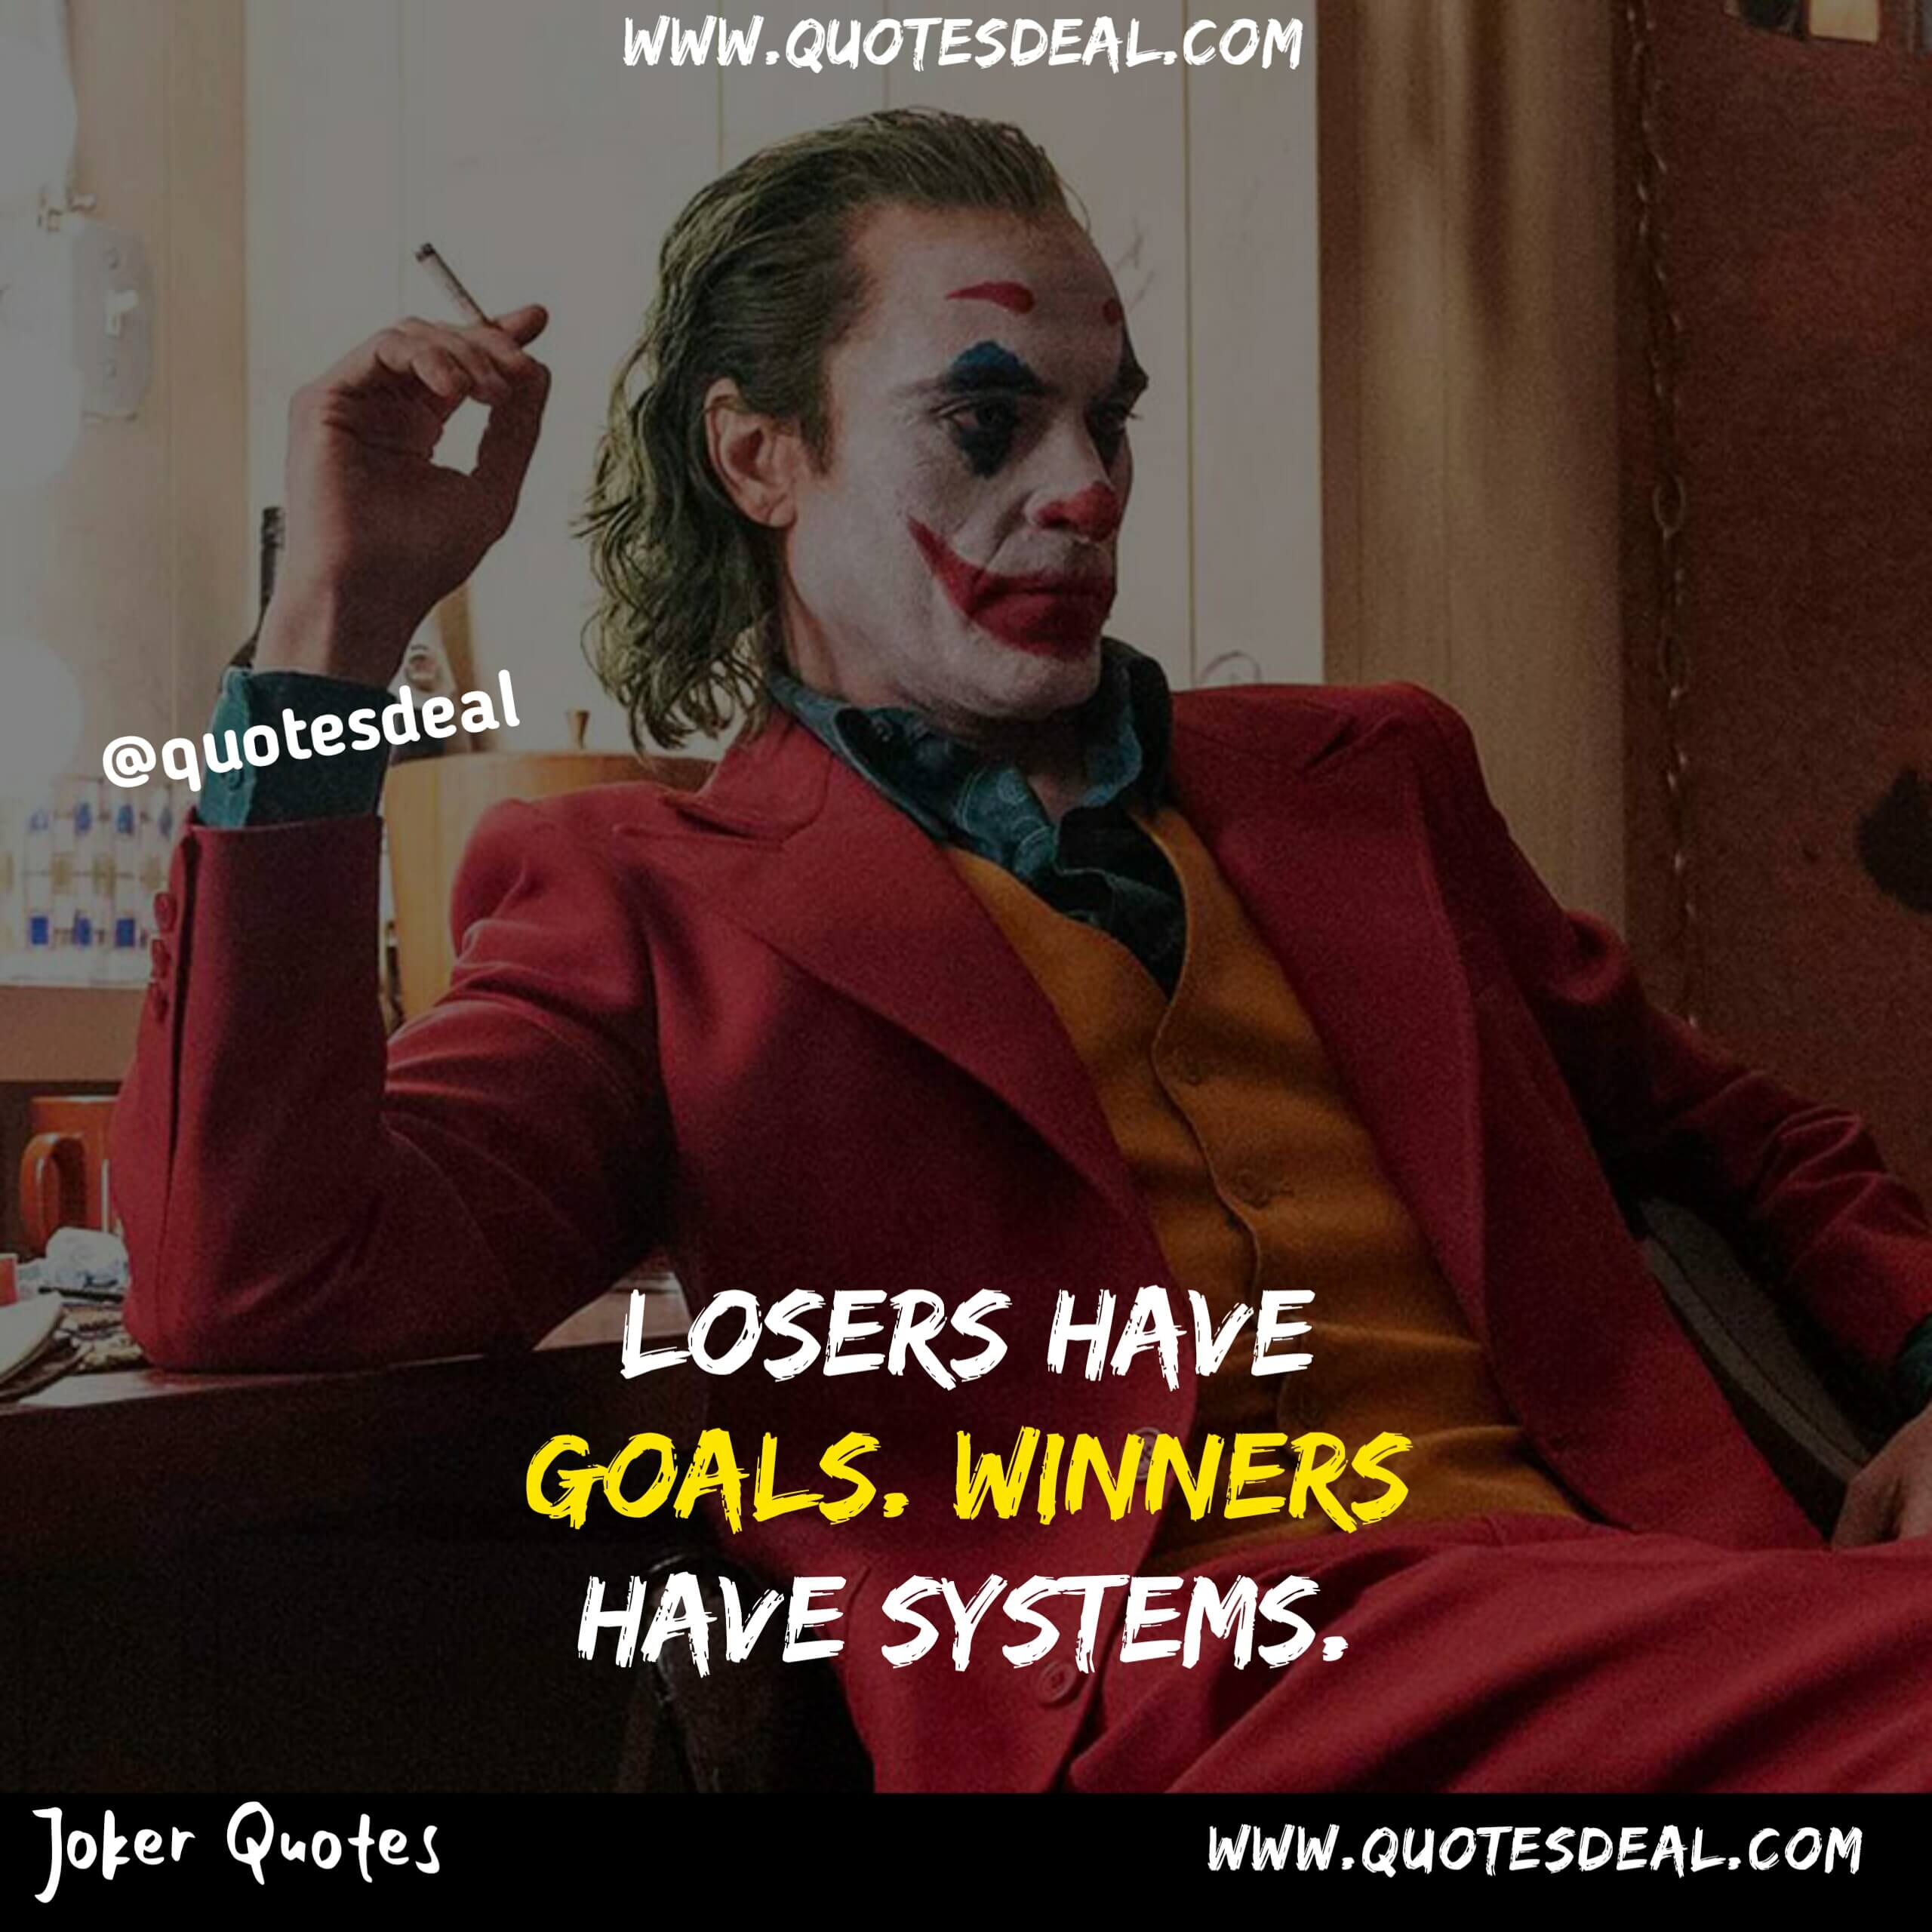 Losers have goals